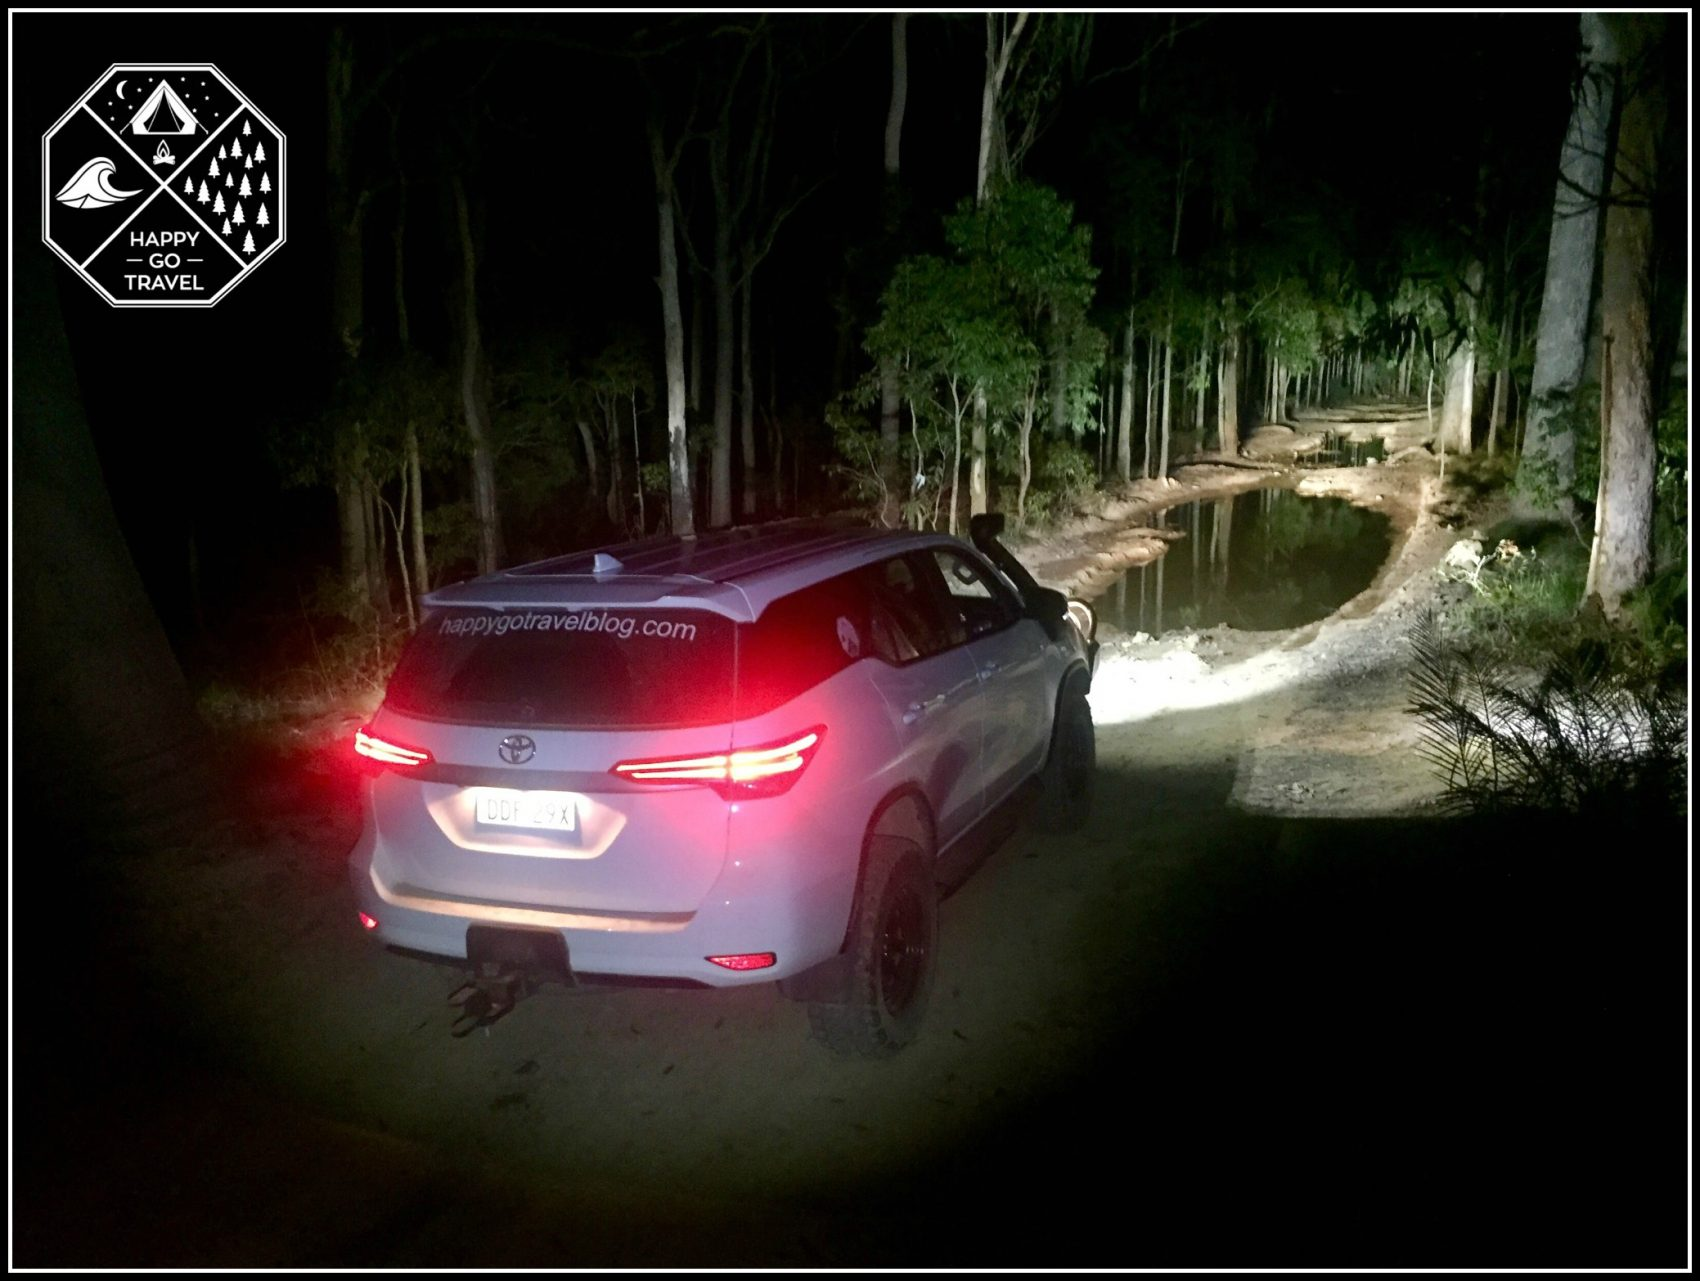 Toyota Fortuner off road at night with Stedi LED Light bars on | Stedi light bar review